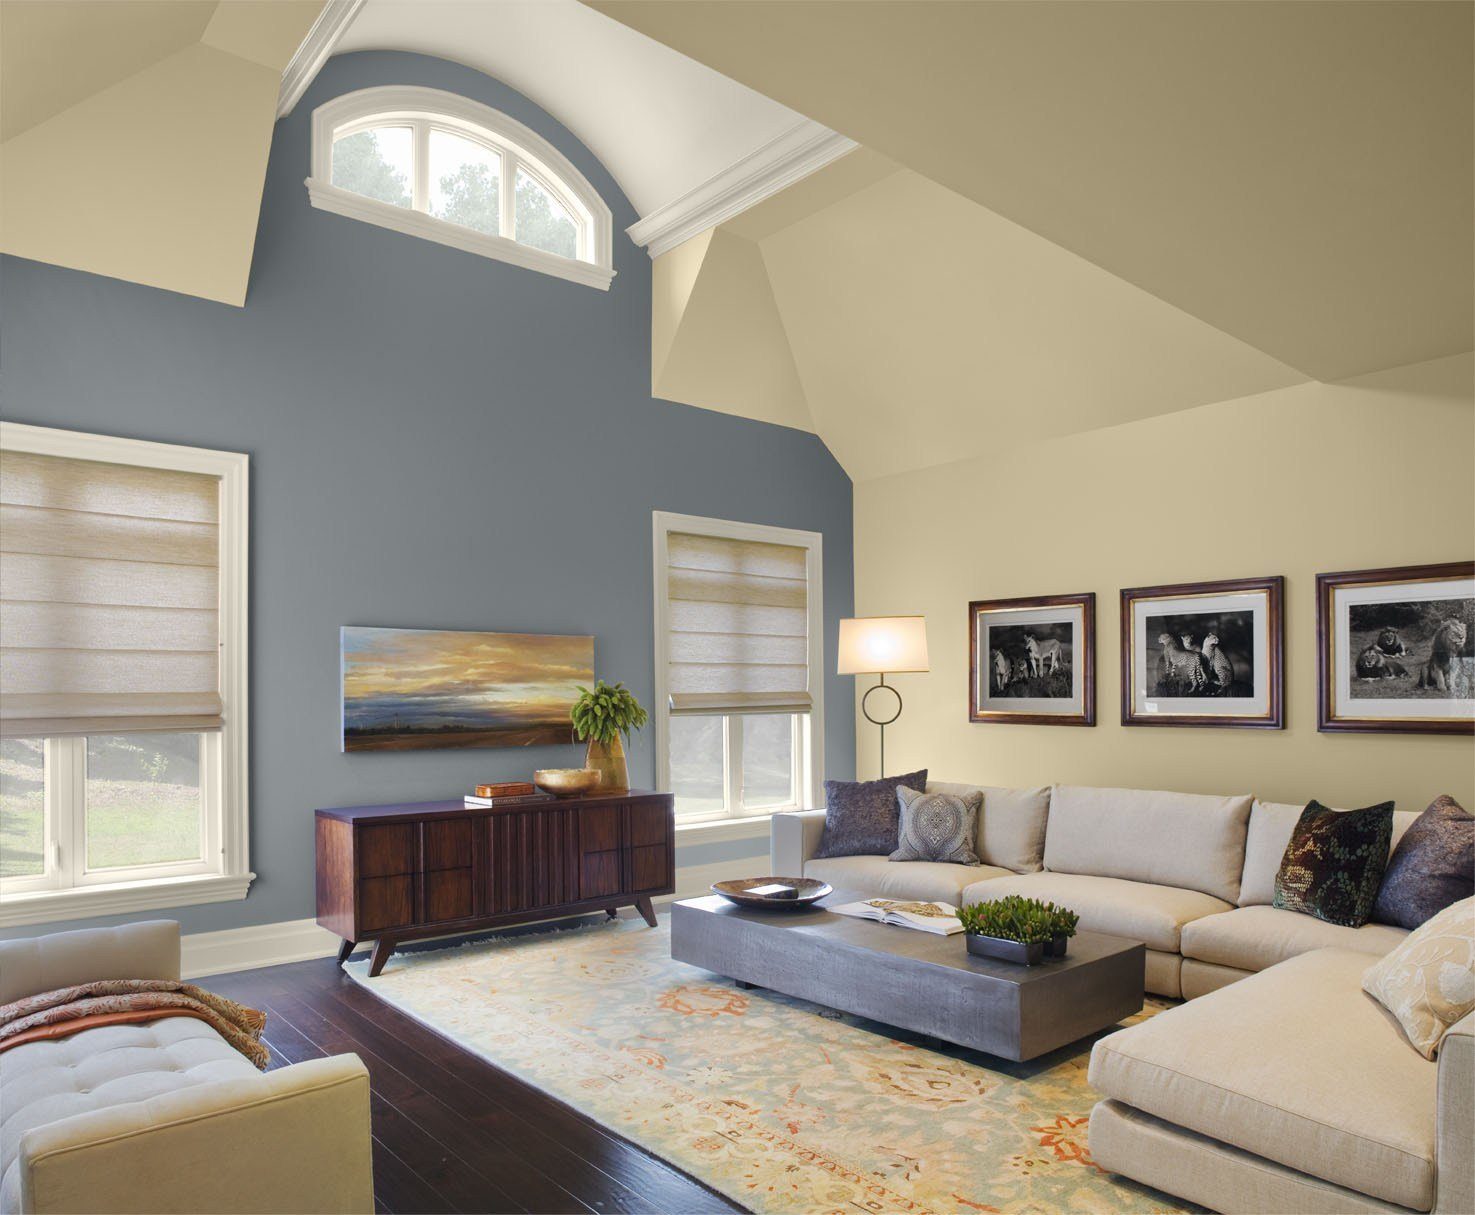 Best Friday Finds Benjamin Moore 2012 Hirshfield S Color Club With Pictures